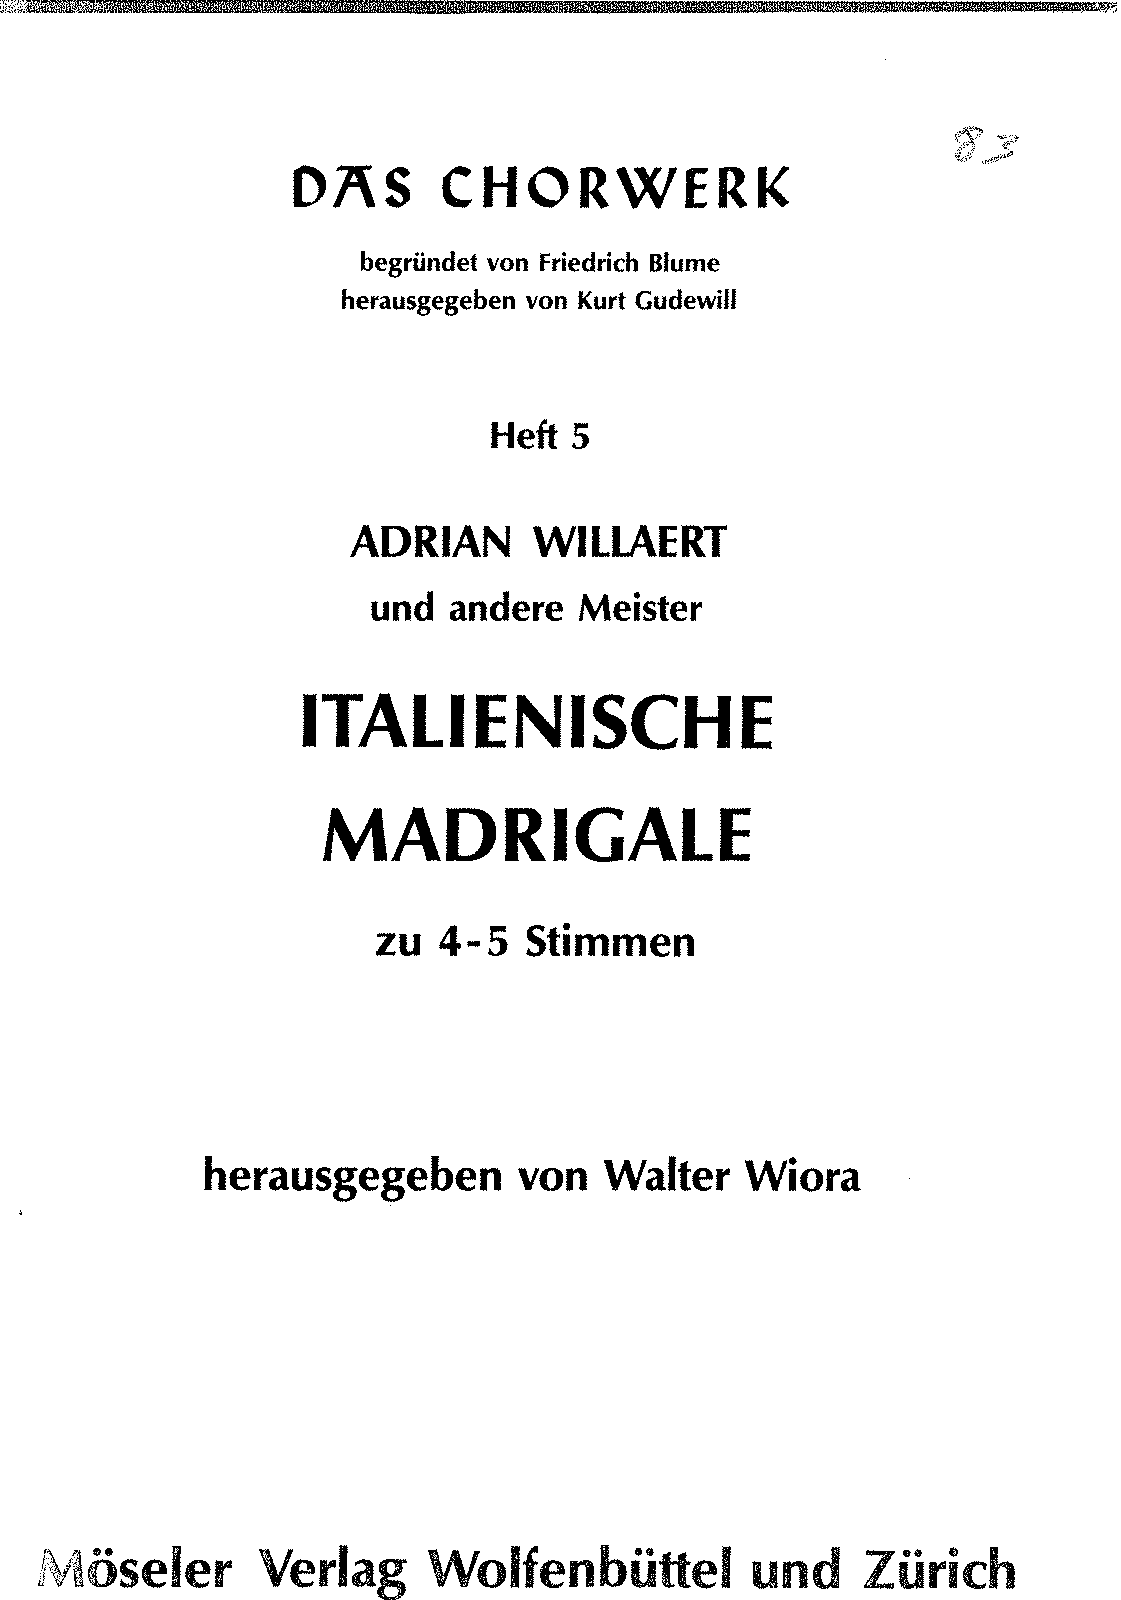 PMLP100141-Das Chorwerk 005 - Willaert, Adrian and others - Italian Madrigals a 4-5 voices.pdf